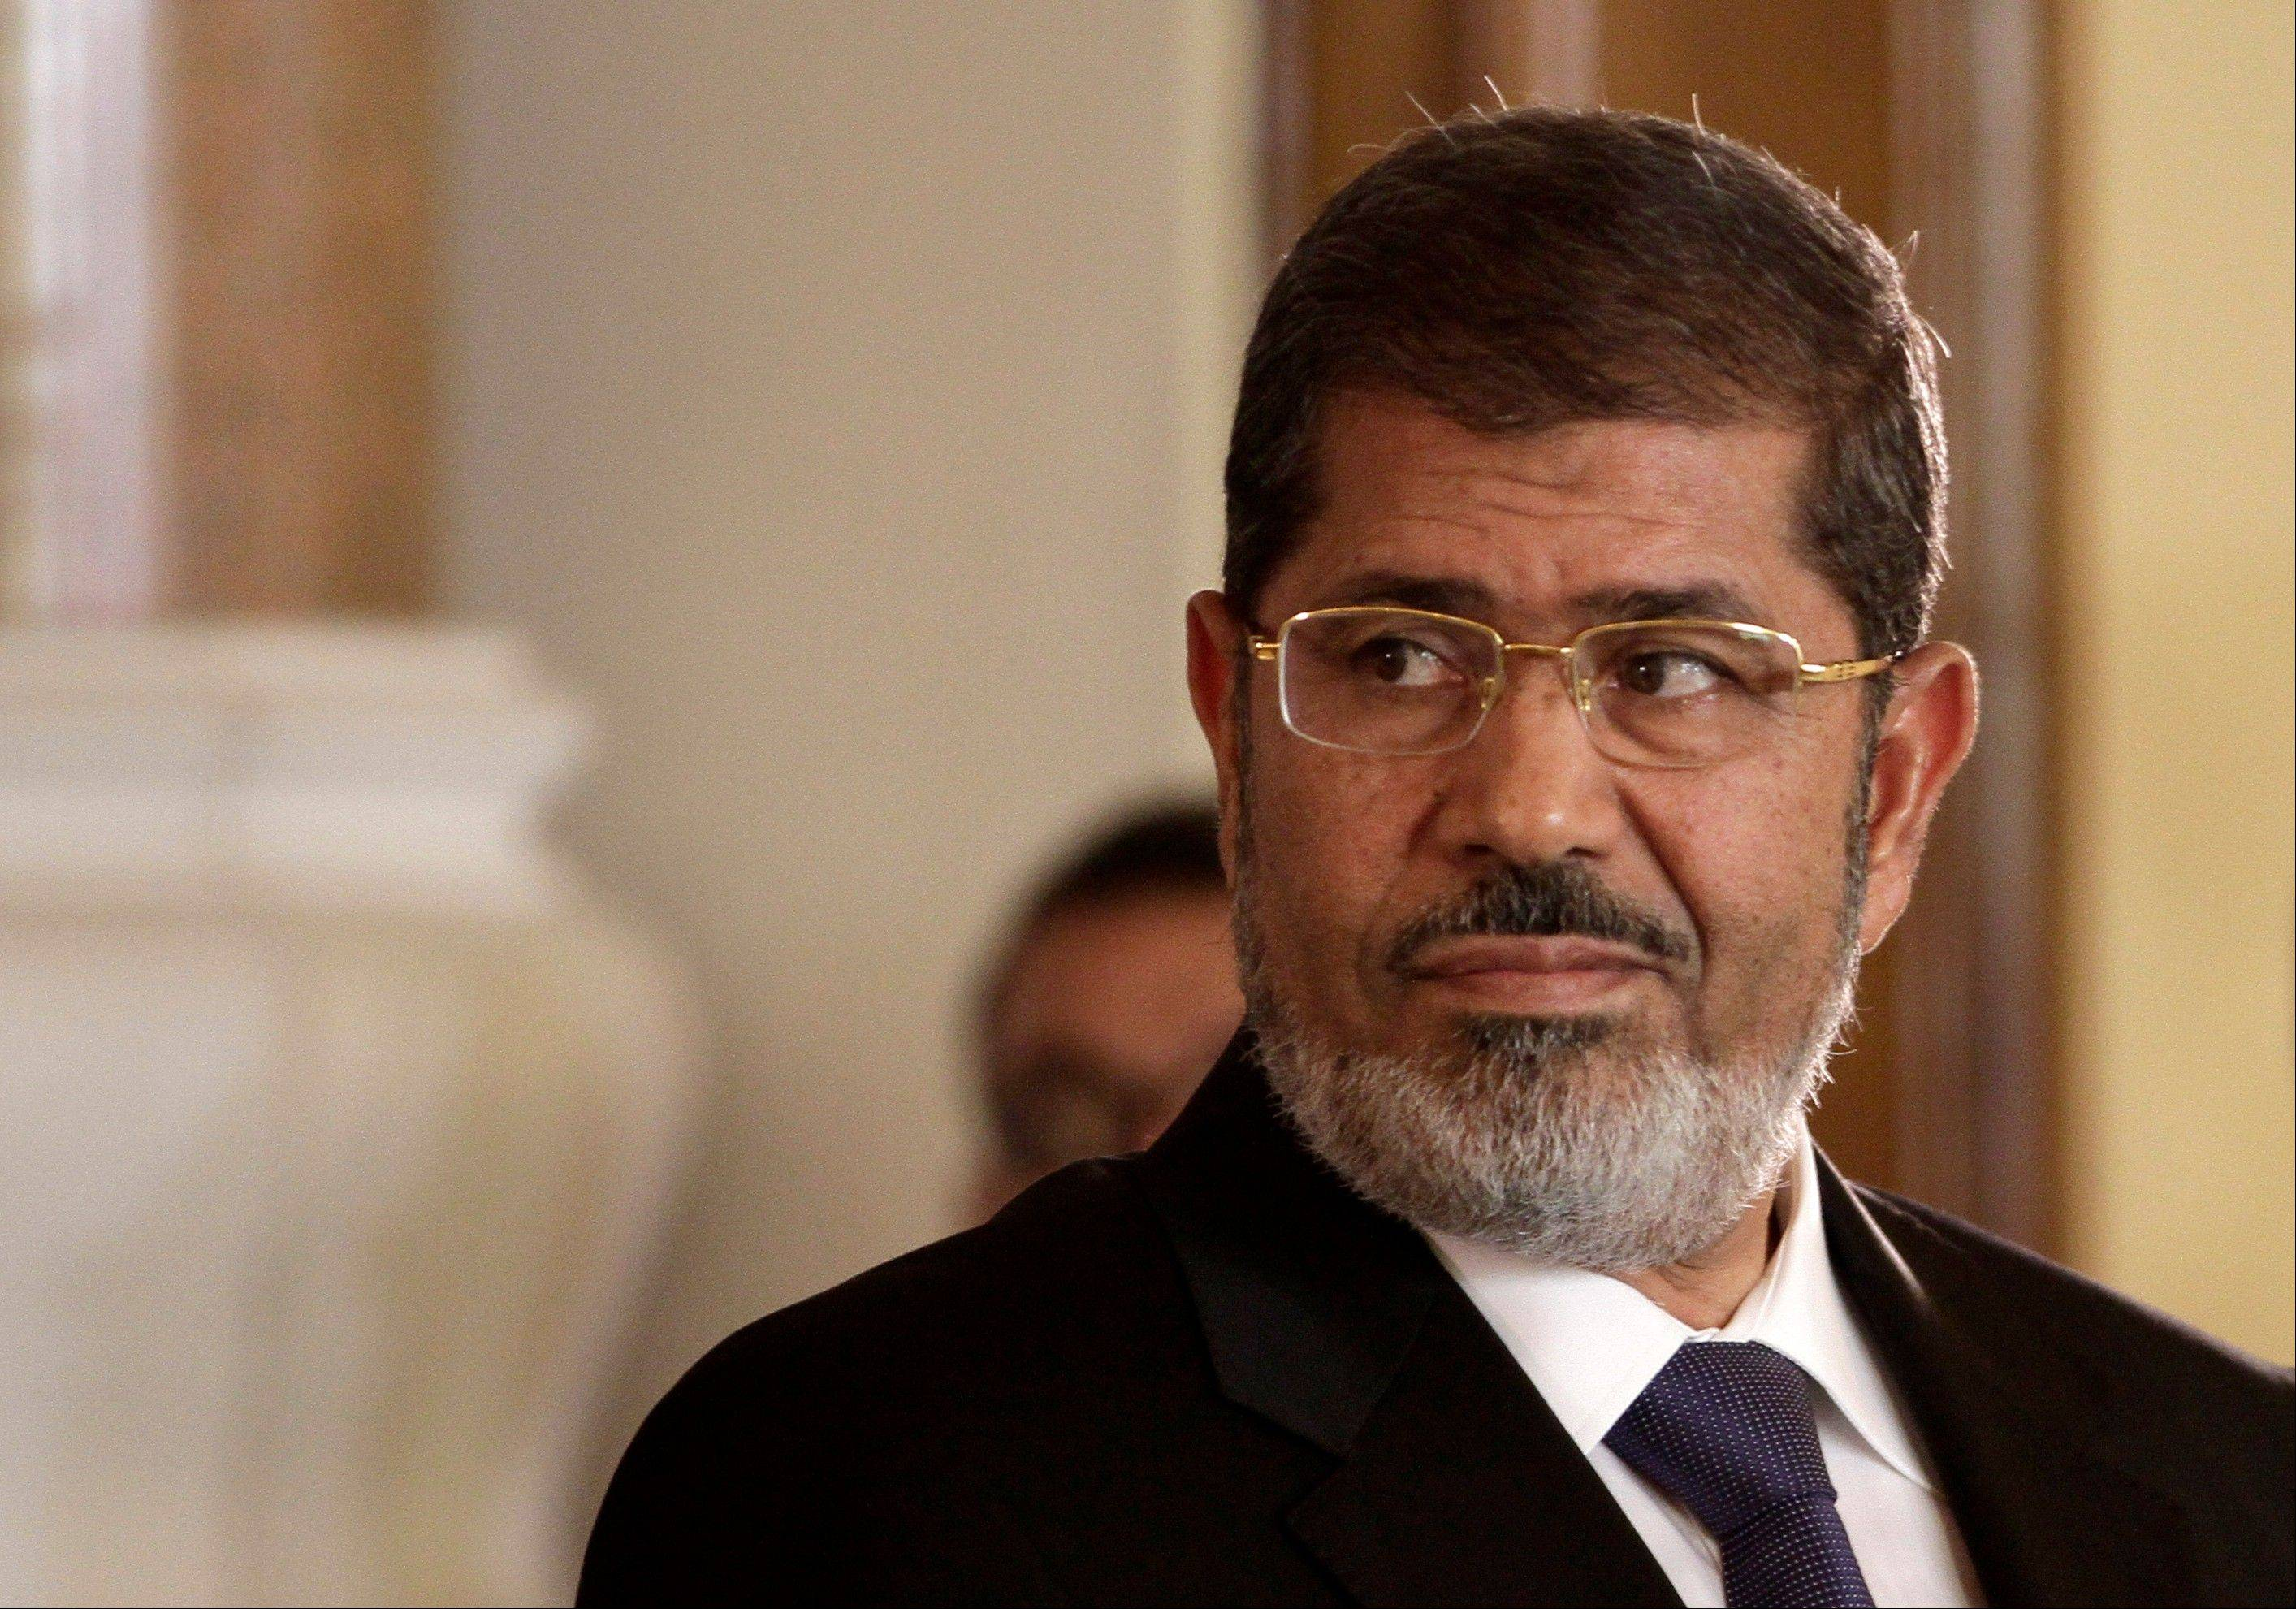 Egypt's top prosecutor referred toppled Islamist President Mohammed Morsi to trial Wednesday for conspiring with the Palestinian group Hamas, Lebanon's Hezbollah and others to carry out a campaign of violence in the Sinai Peninsula and beyond to destabilize the country following his ouster.